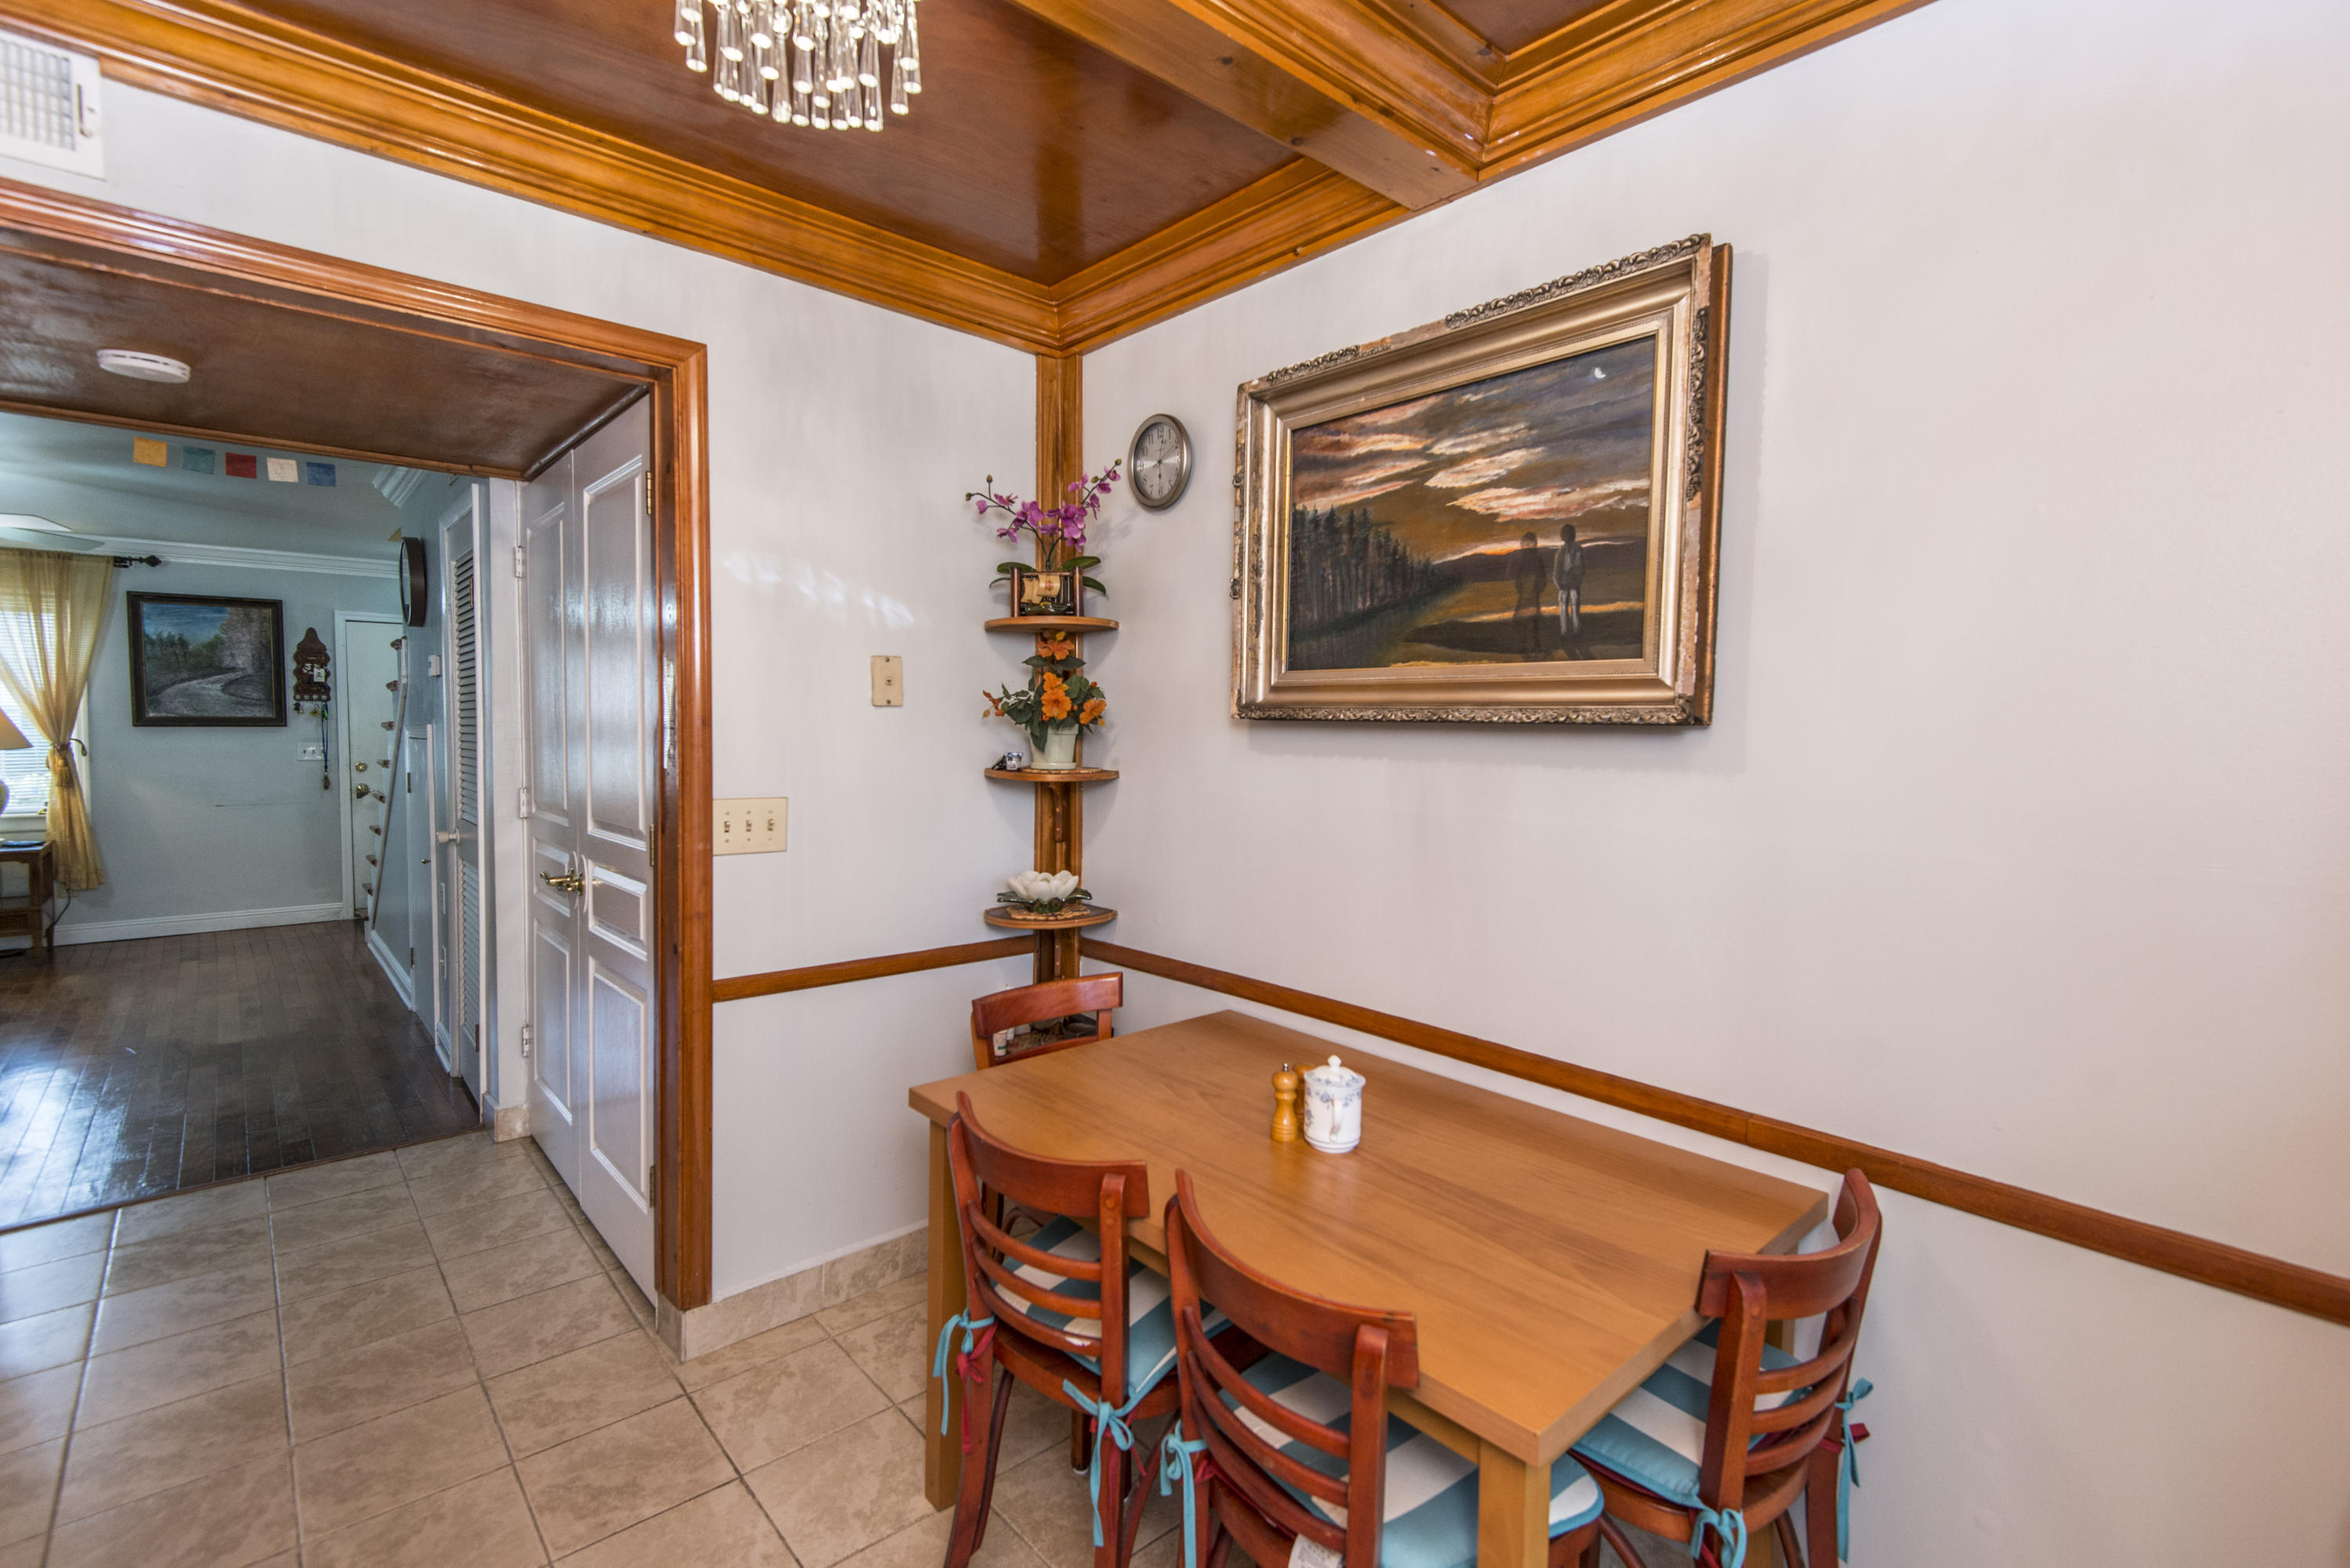 Rivers Point Row Homes For Sale - 21 Rivers Point Row, Charleston, SC - 3